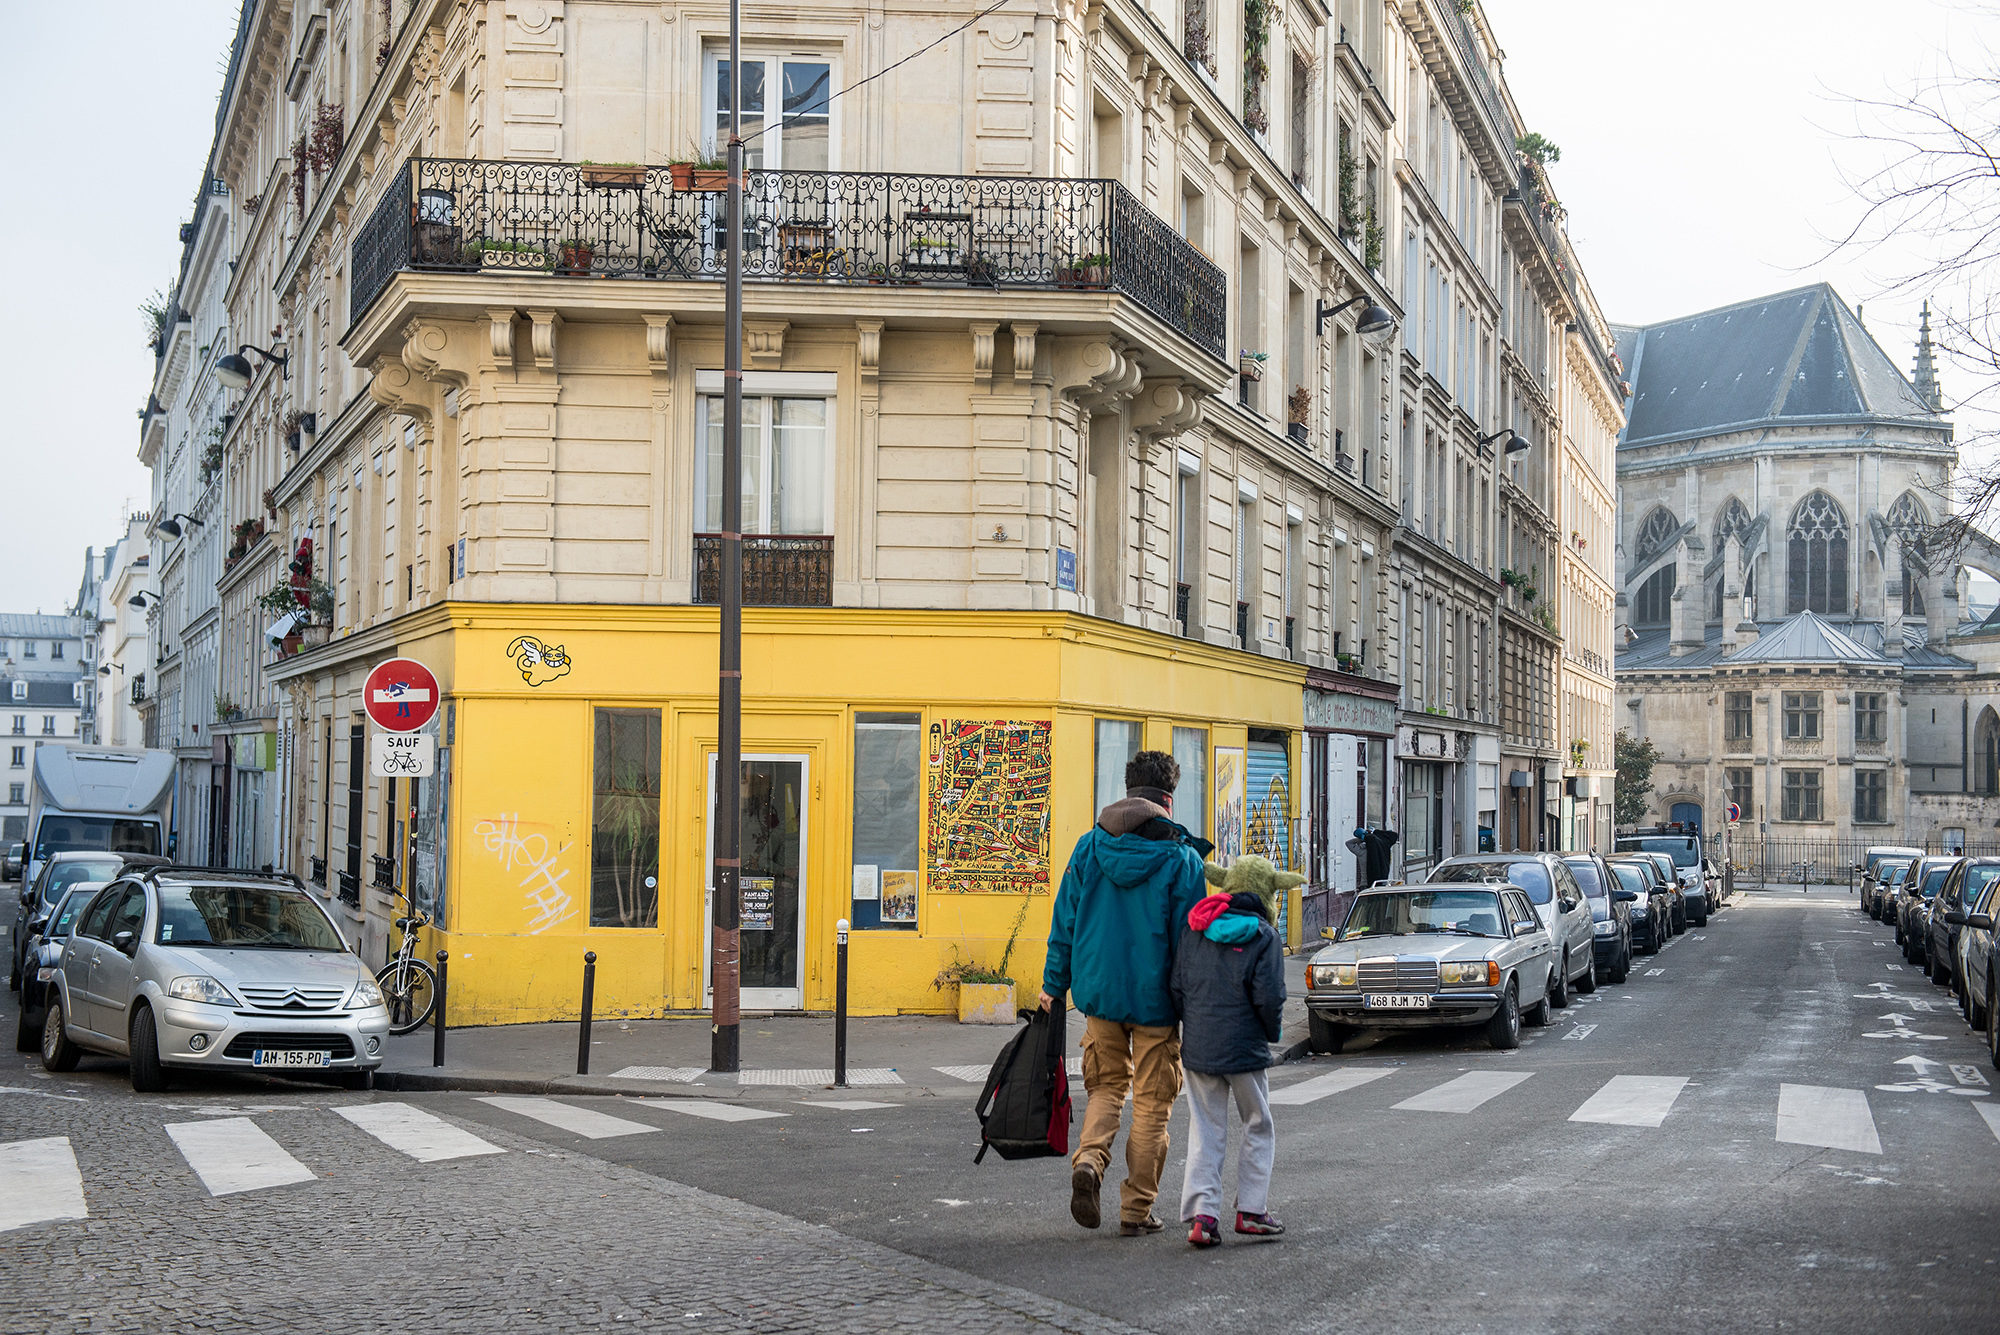 rue Myrha in the Goutte d'Or, Paris